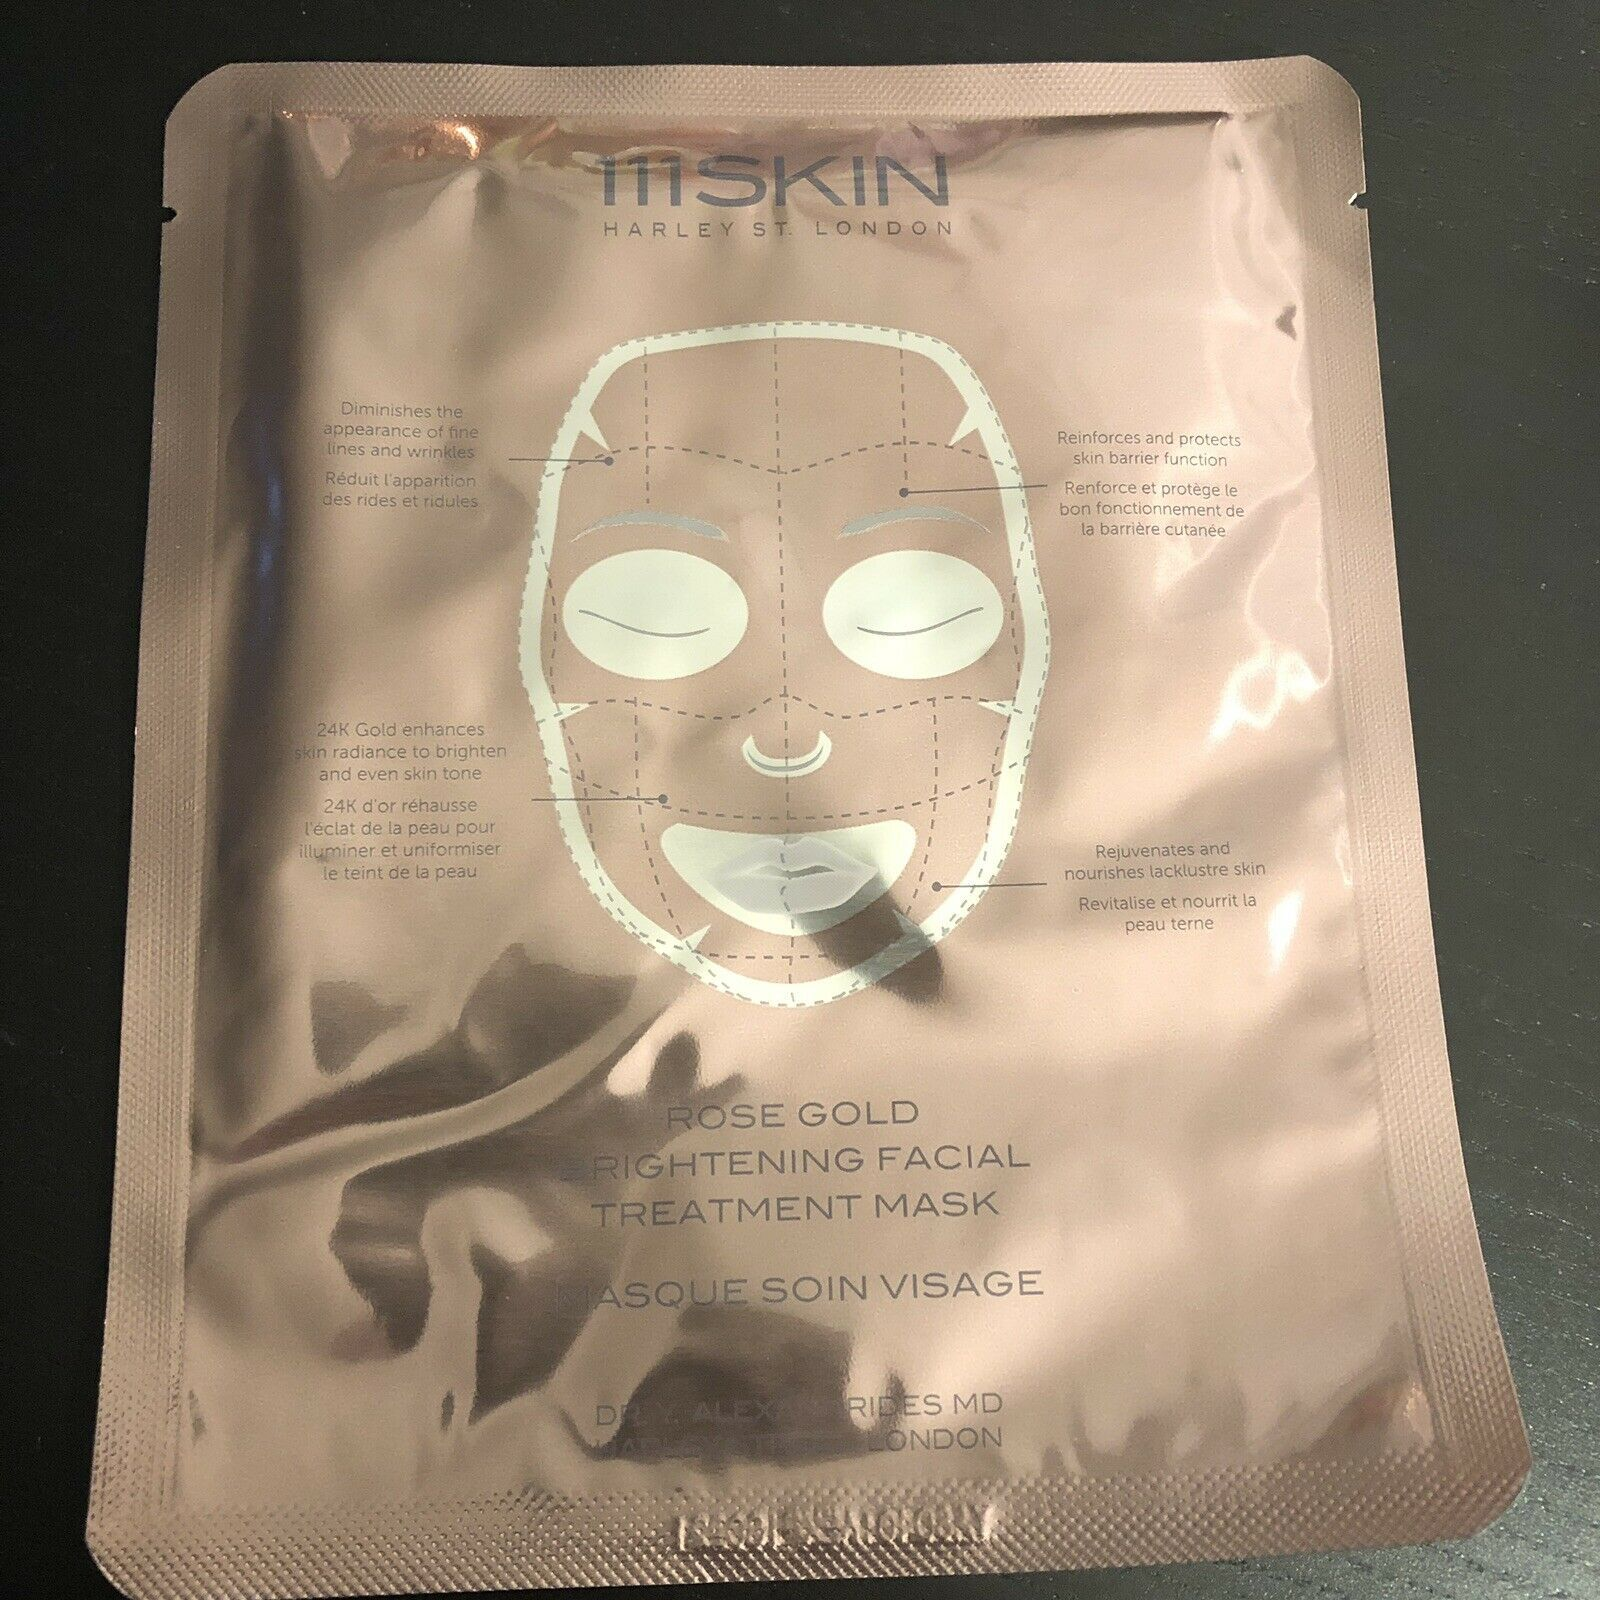 TWO (2) 111 Skin Rose Gold Brighteninf Facial Treatment Mask RETAIL VALUE $70